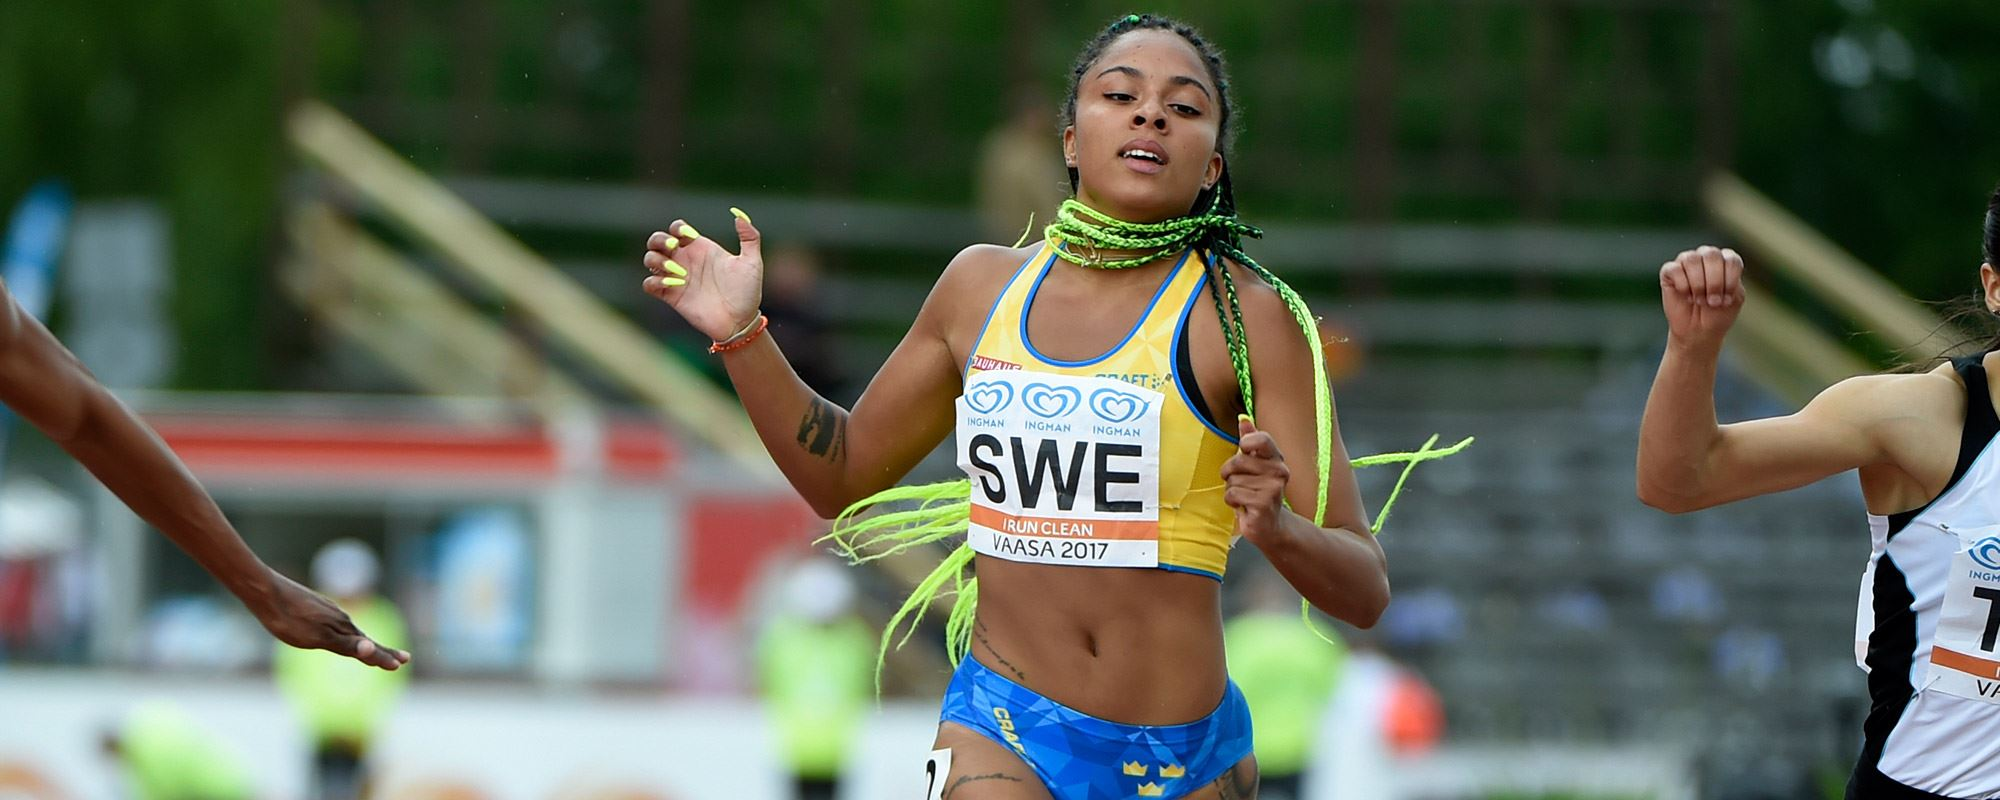 European Athletics U23 Championships